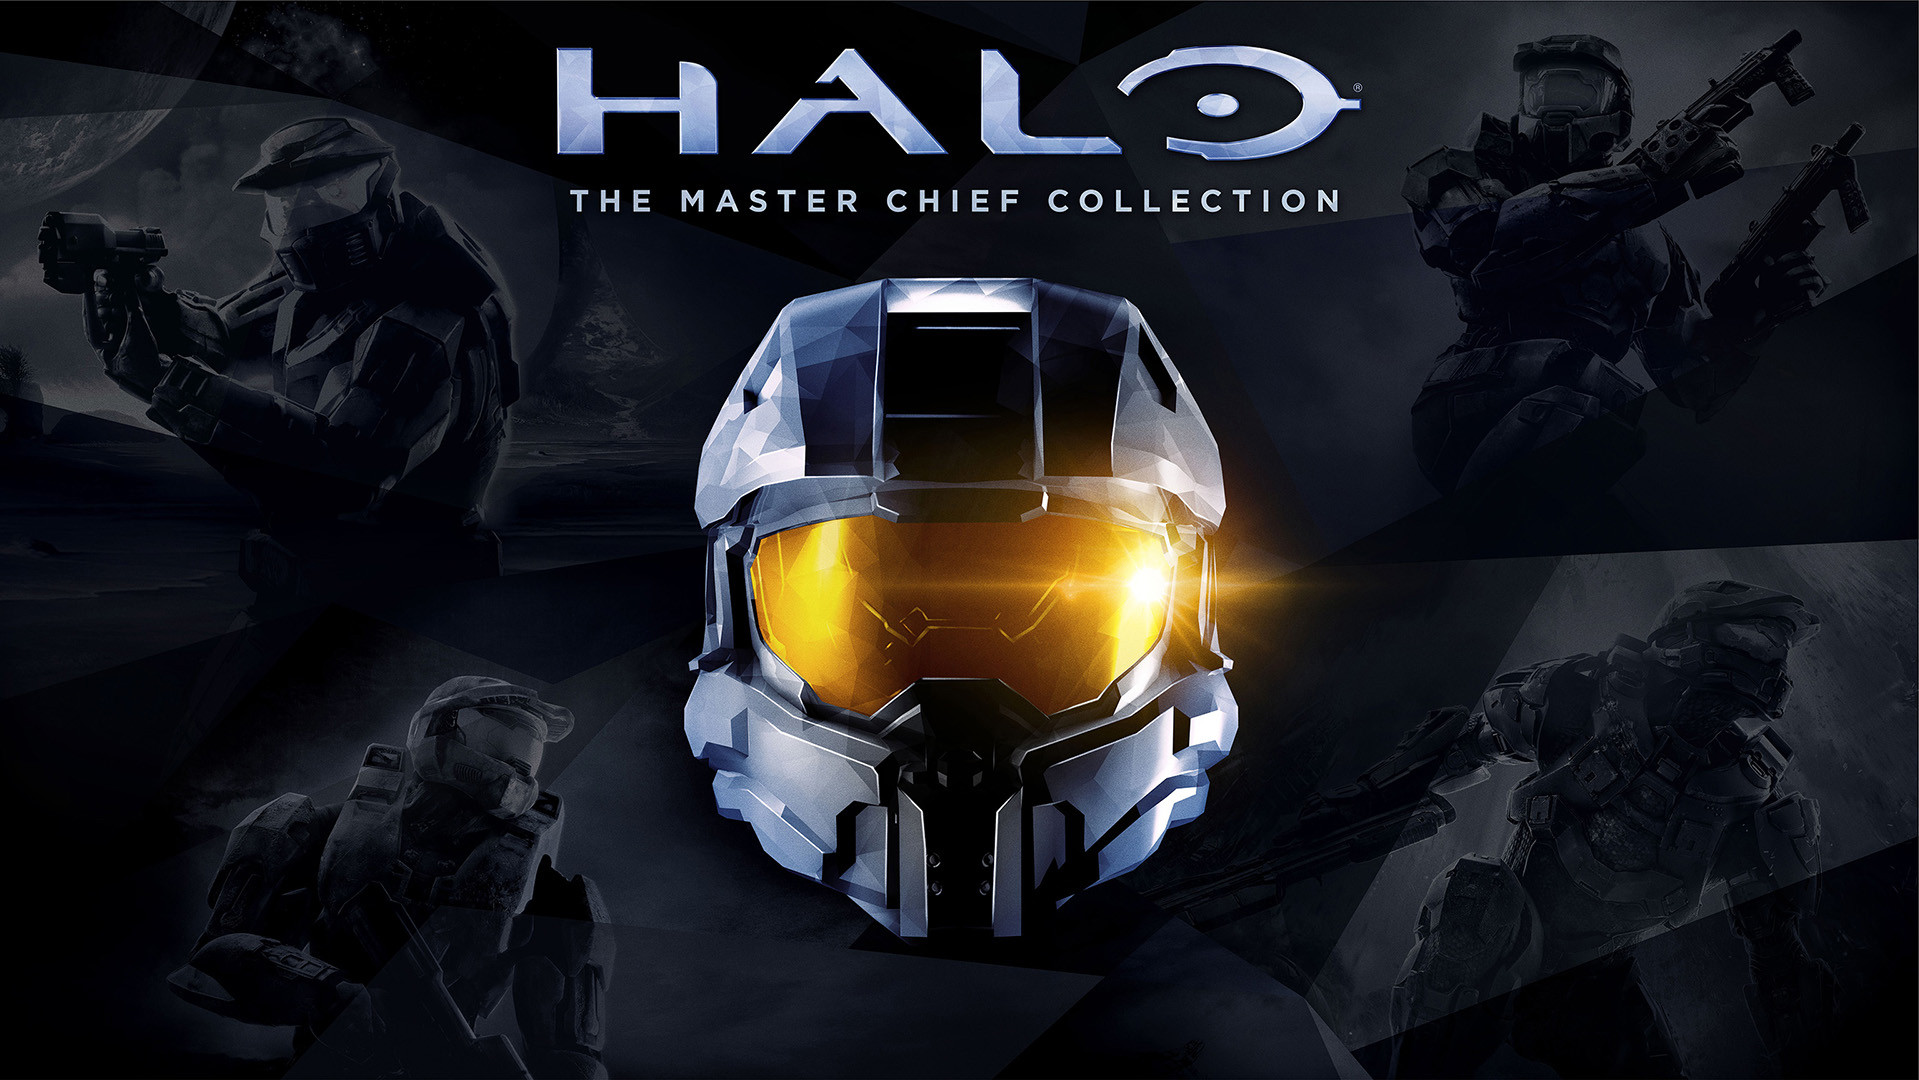 halo-the-master-chief-collection-tendra-nueva-actualizacion-en-xbox-one-x-frikigamers.com